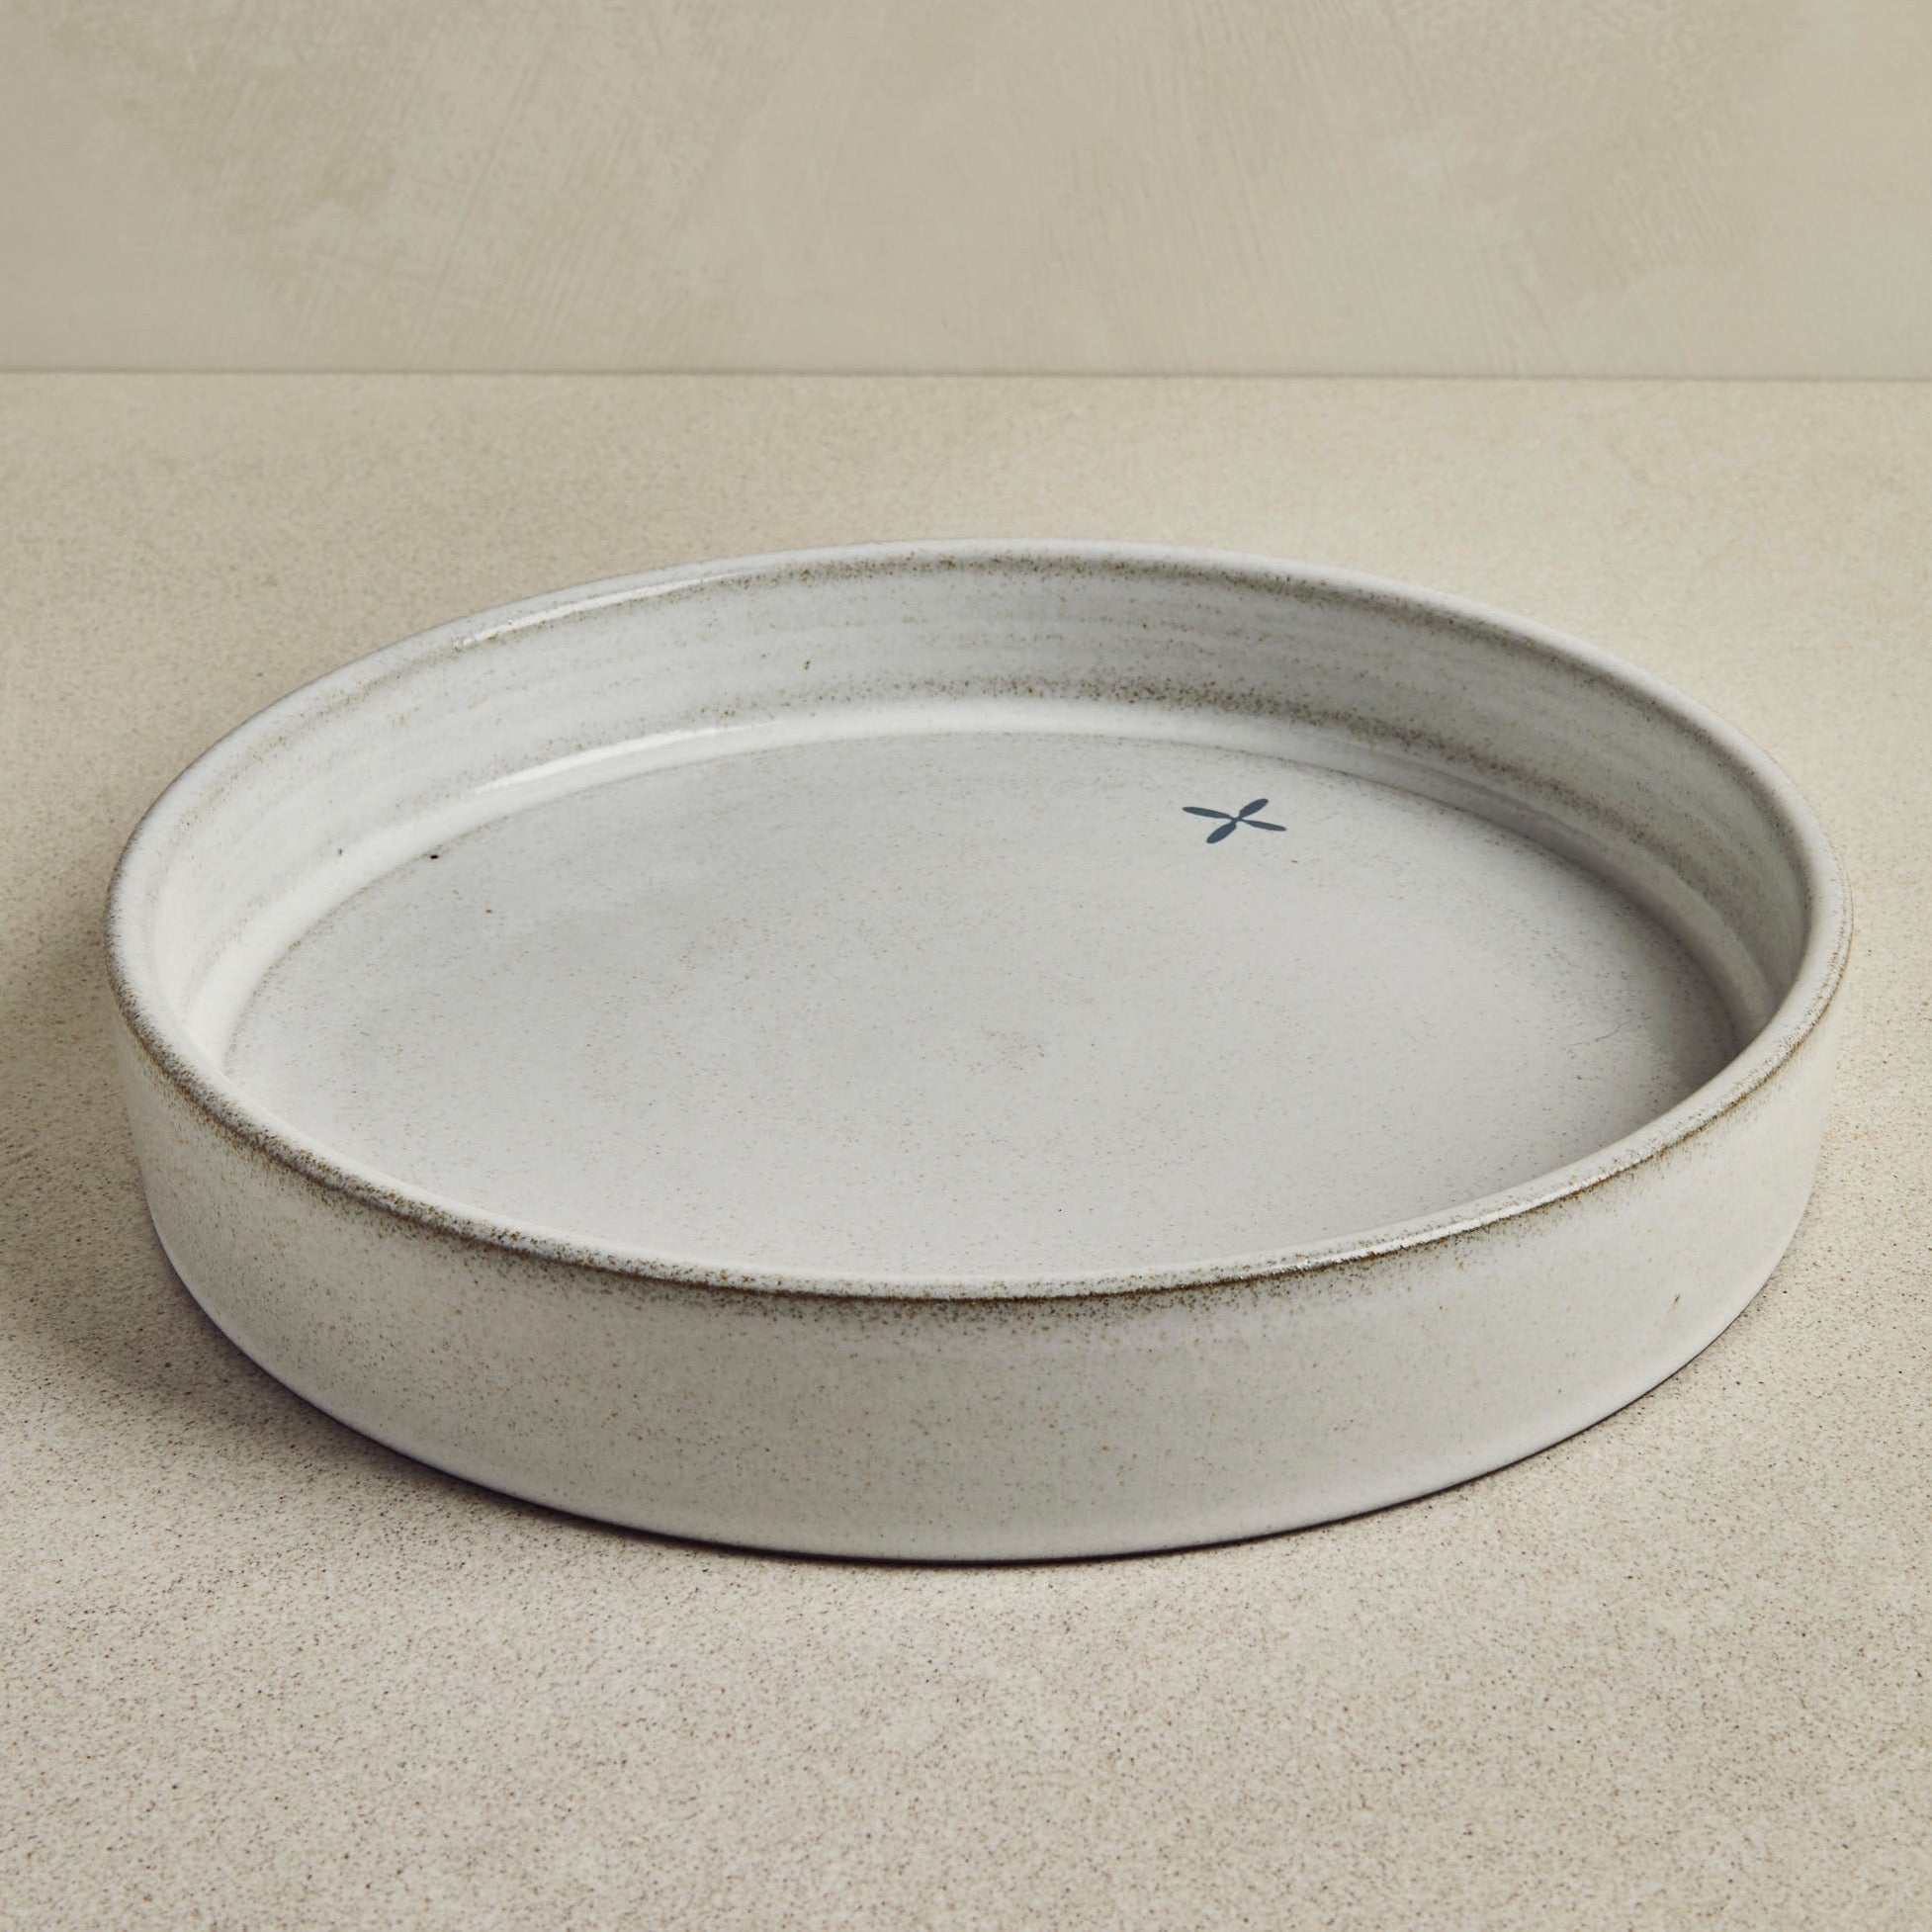 Grey pie dish with anthracite pattern on the side